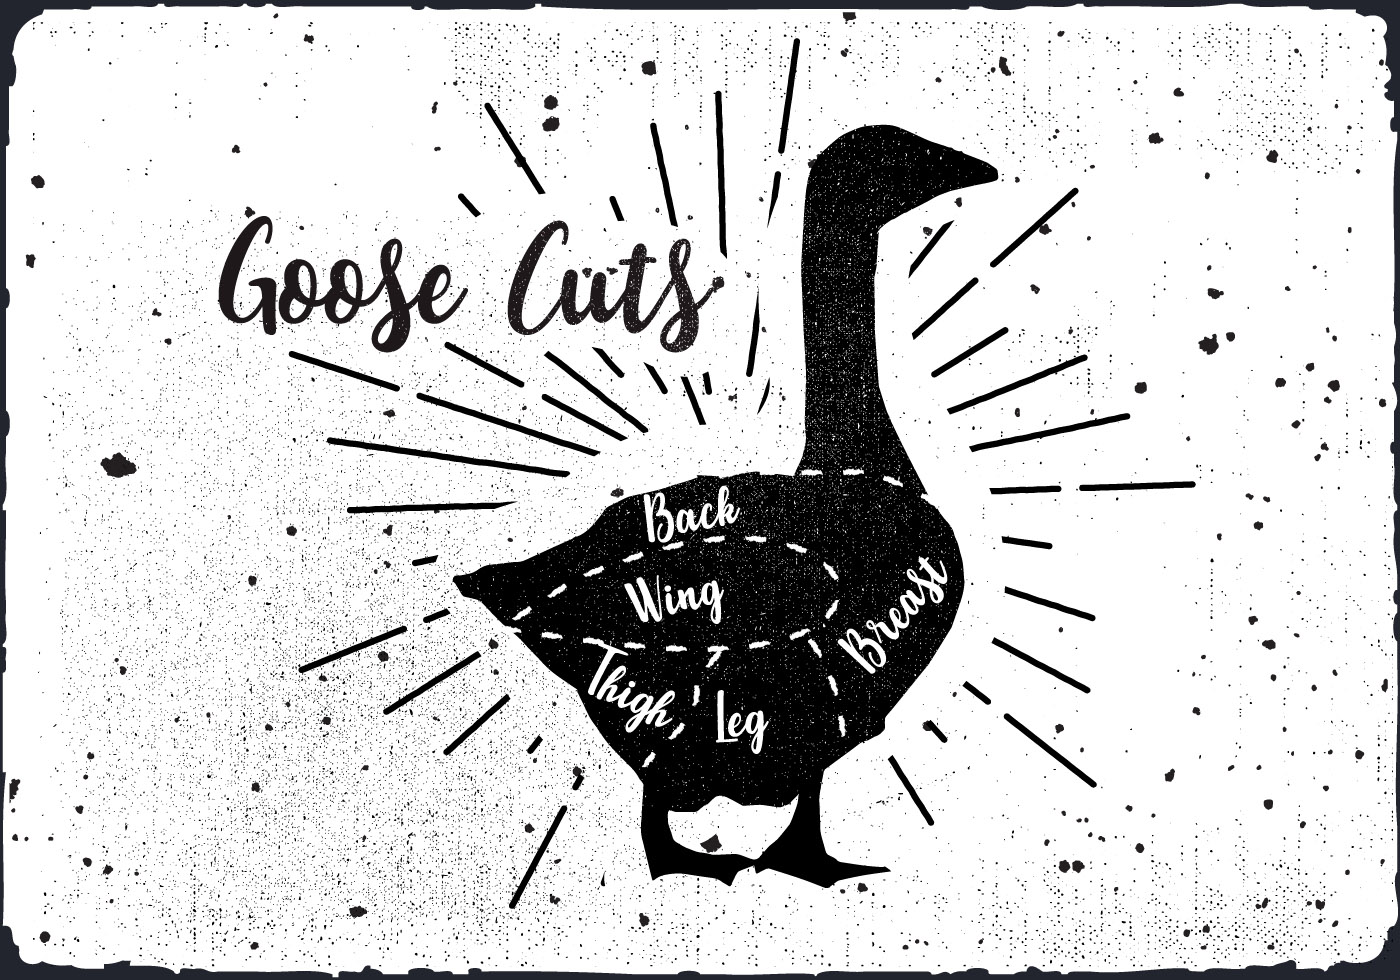 Goose Cuts Vector Background